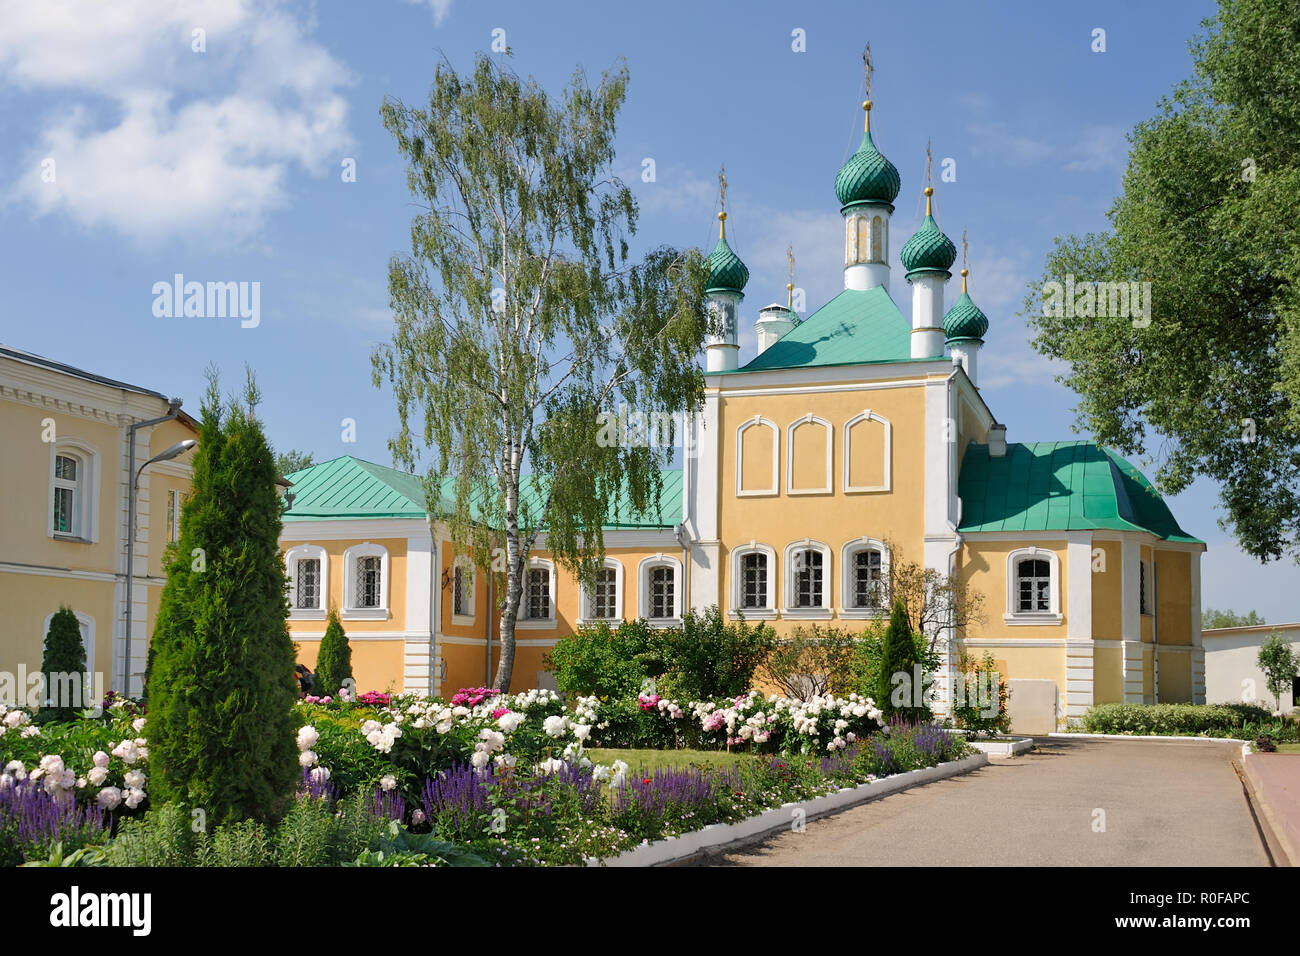 Monastic Garden and Annunciation Church Framed By Trees - Stock Image